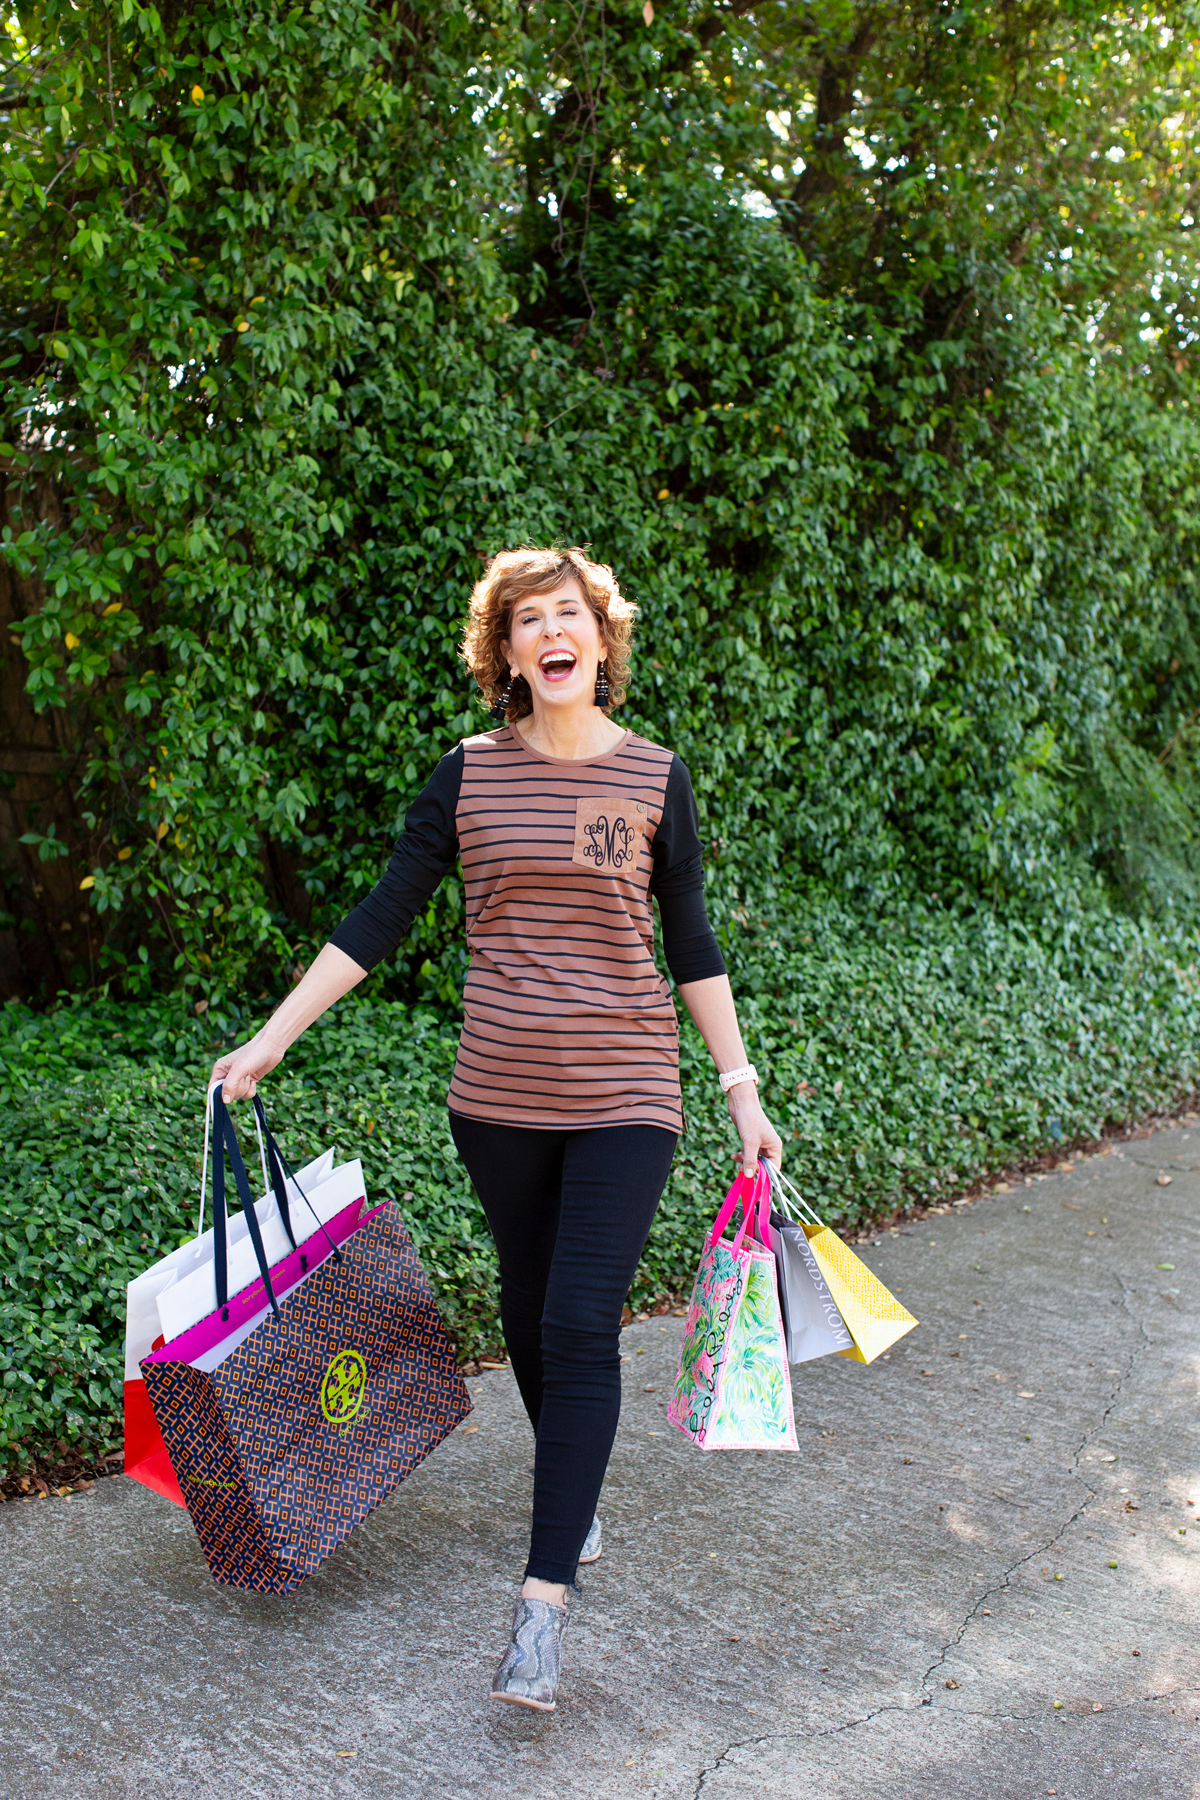 woman walking in the park carrying lots of shopping bags and laughing